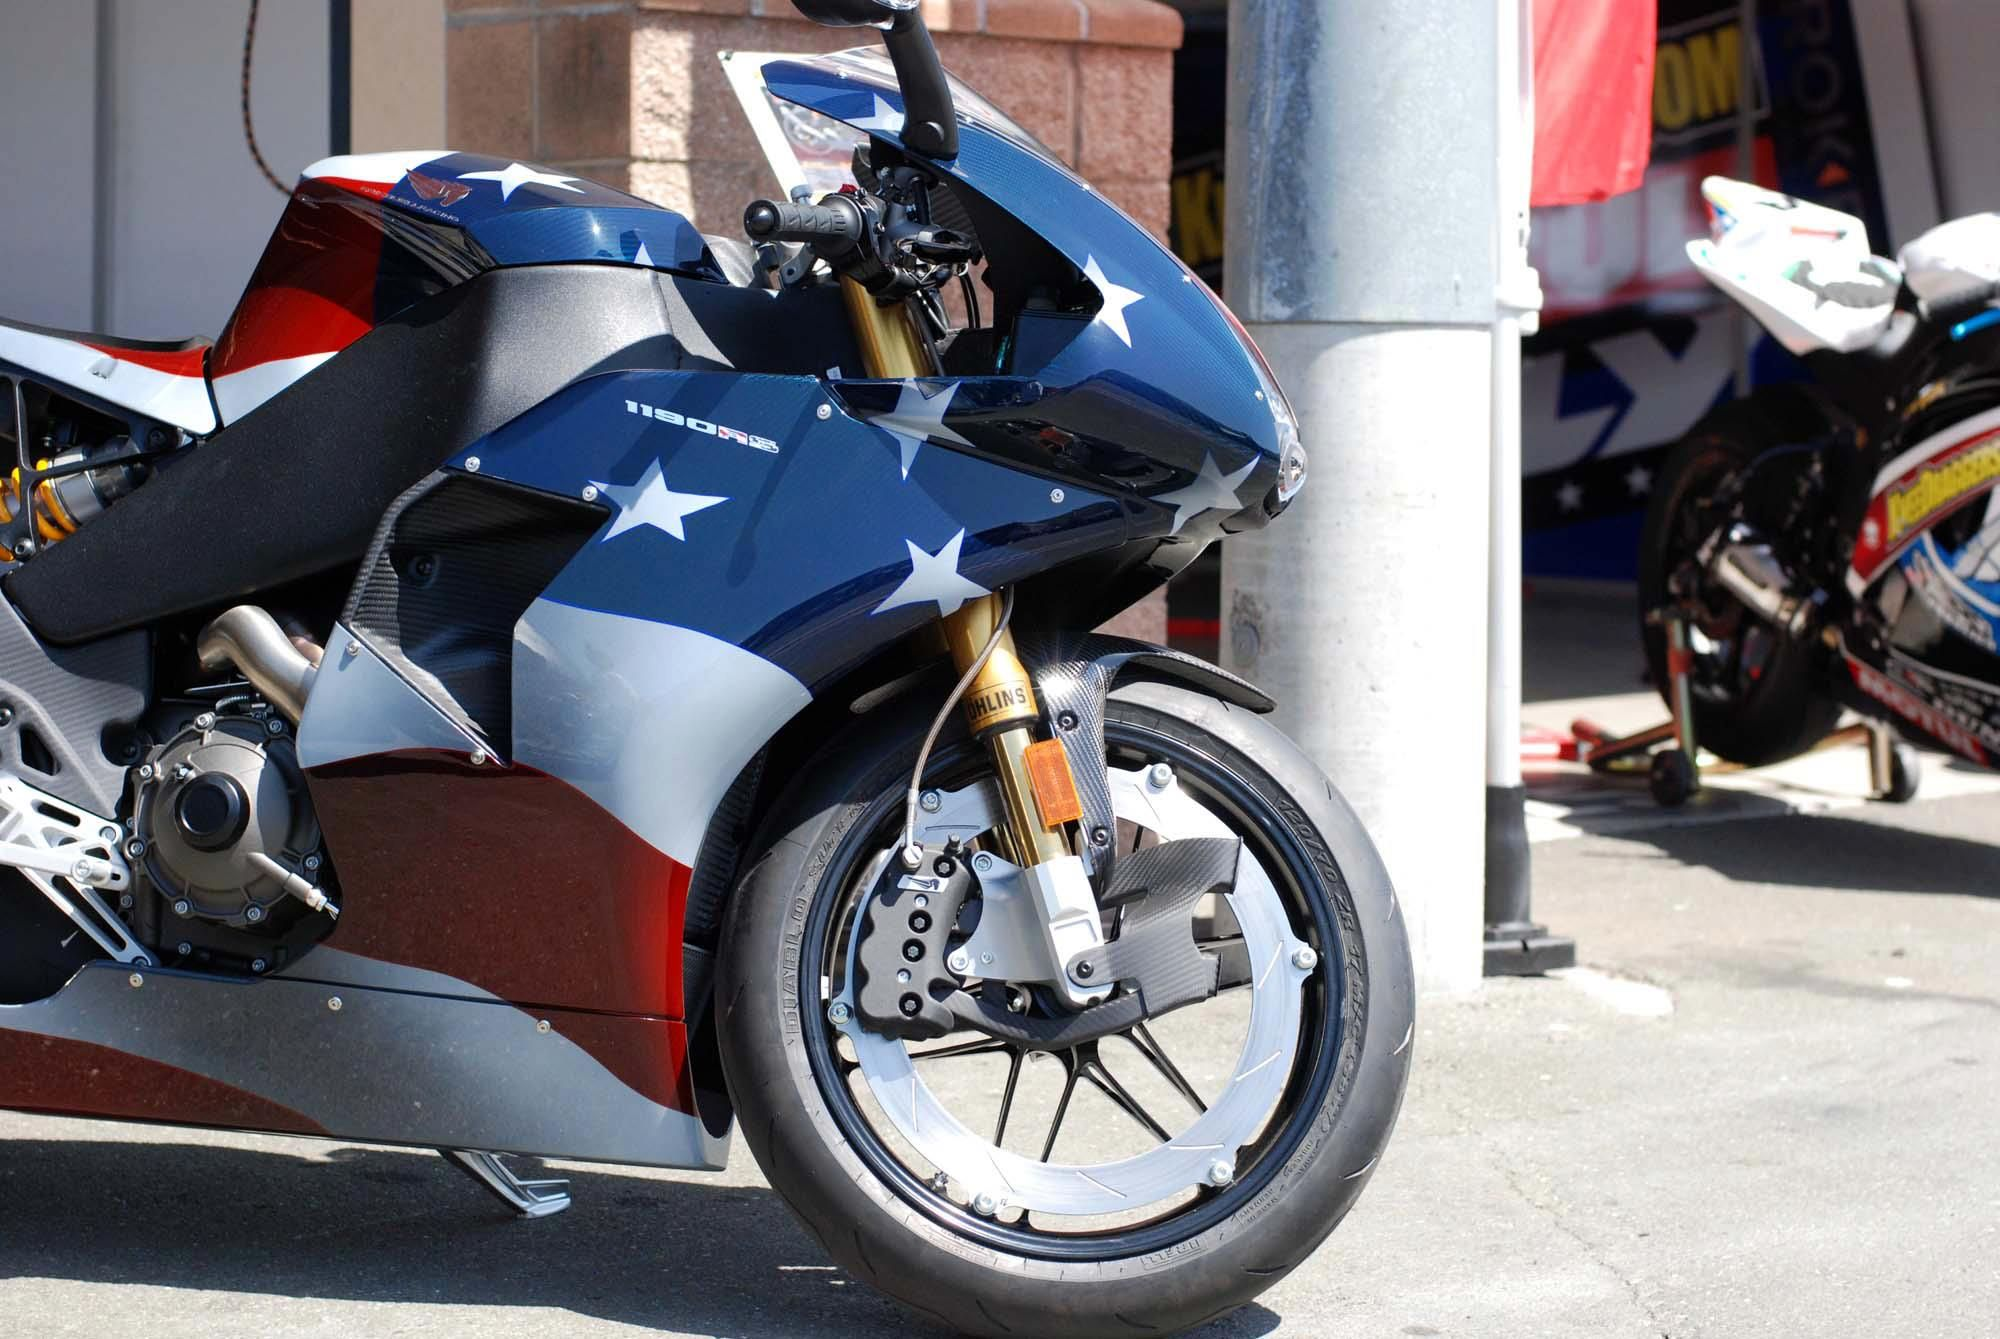 Up close with the erik buell racing merica edition asphalt rubber